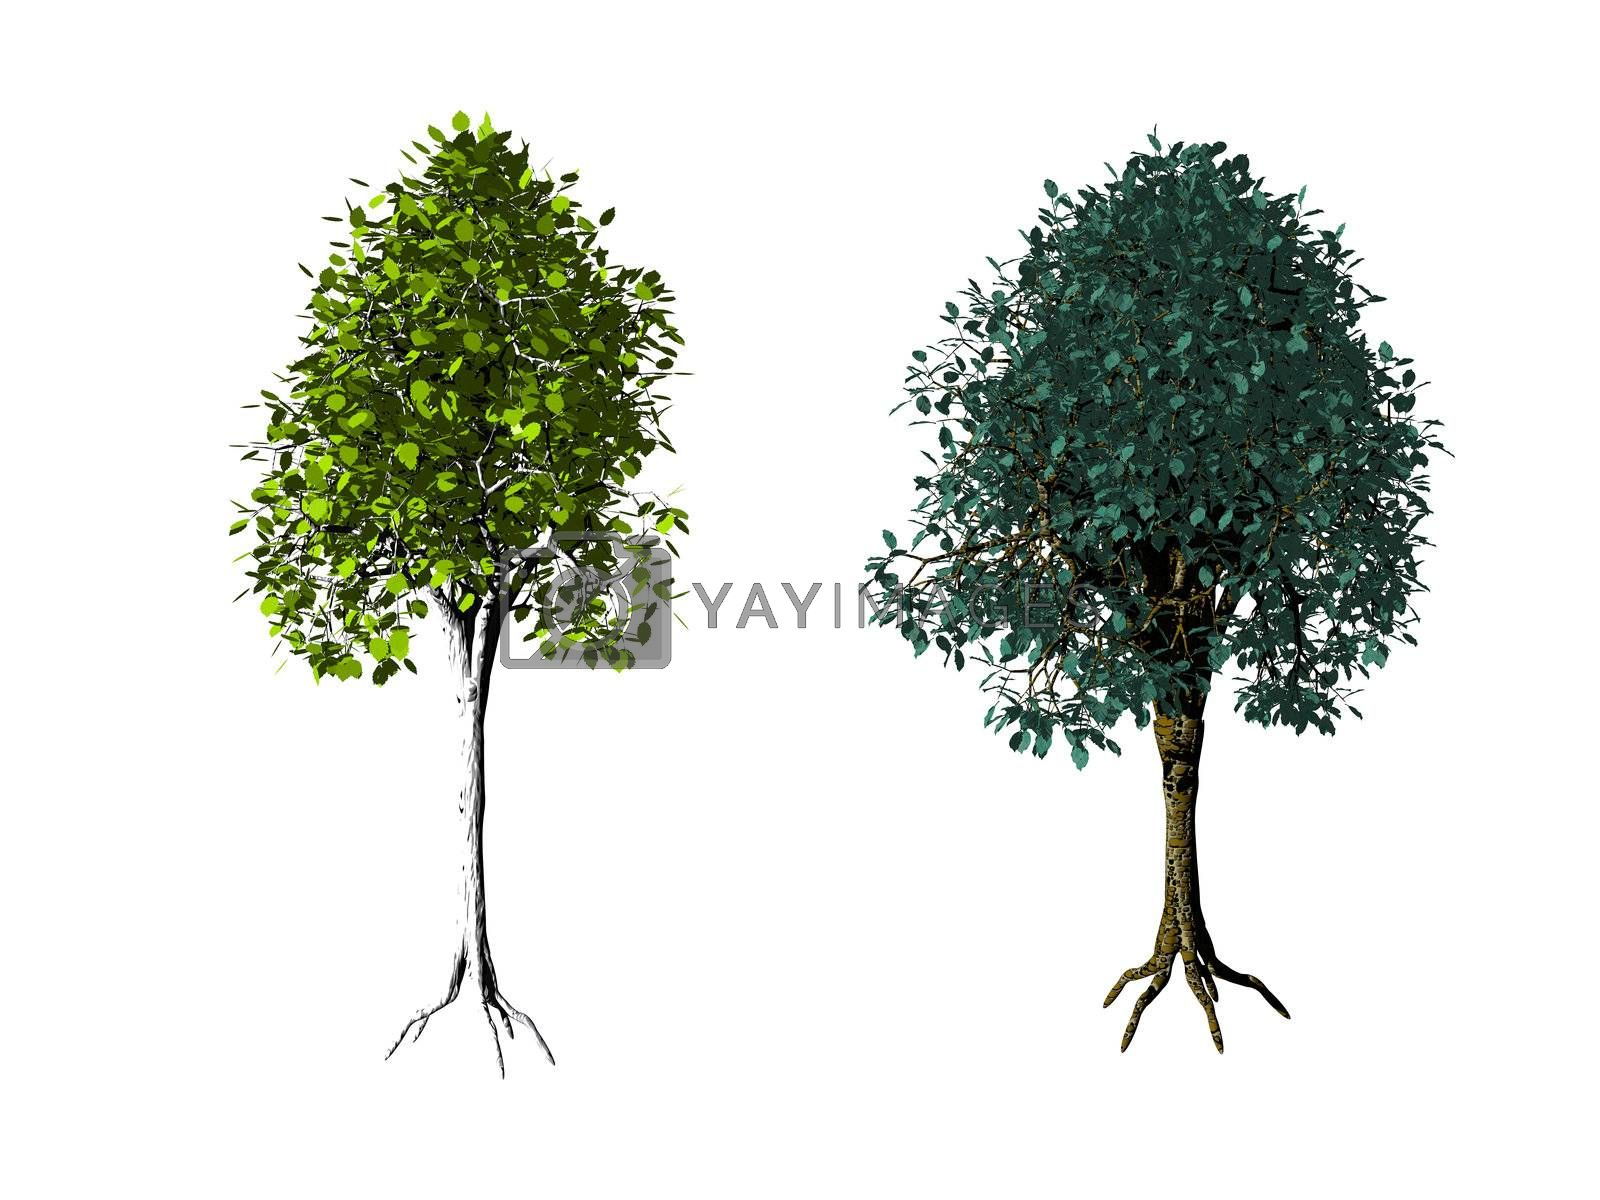 Royalty free image of trees by drizzd